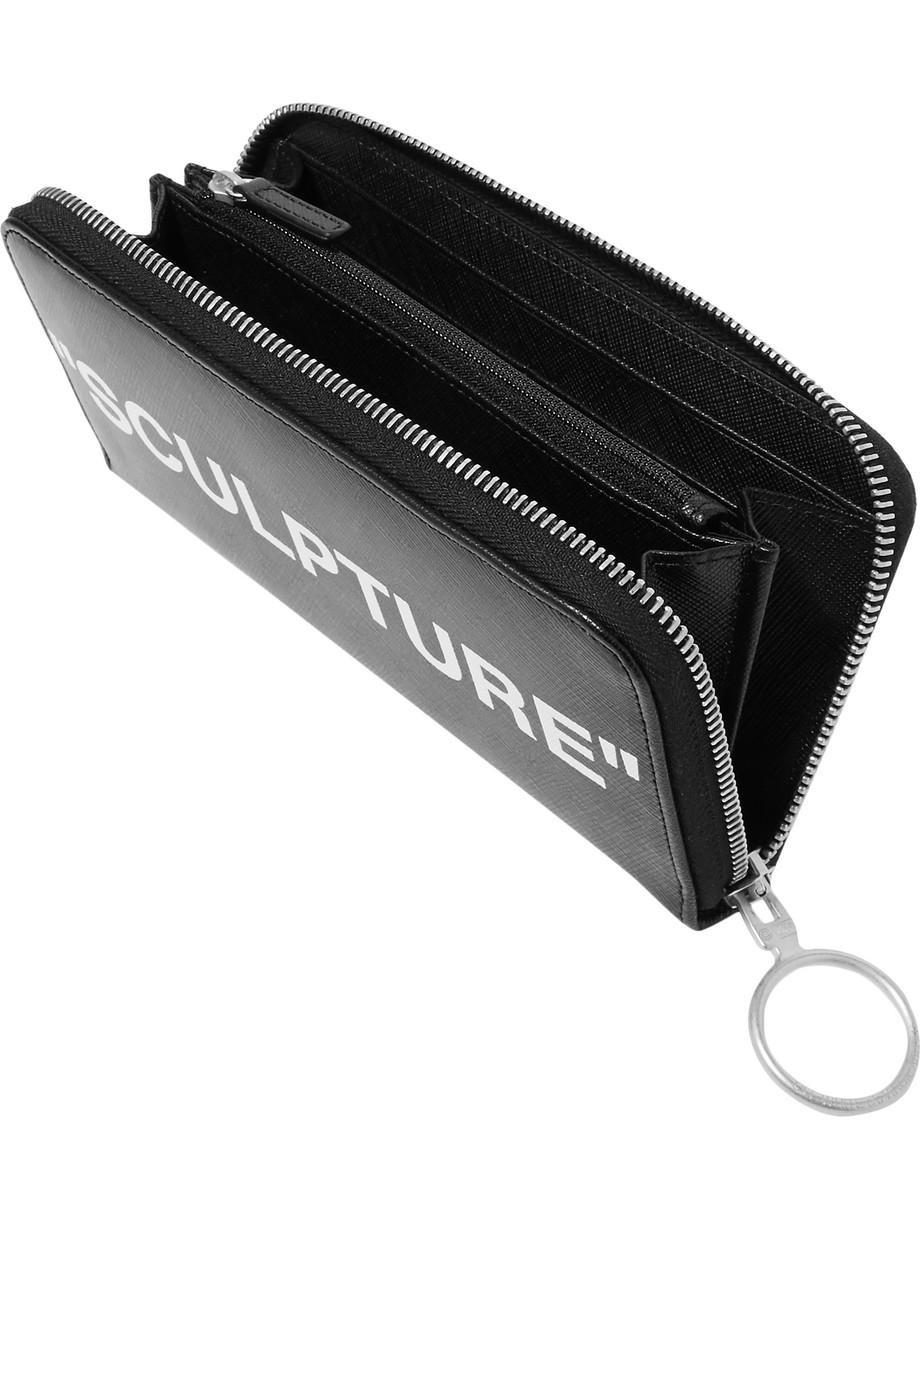 Printed leather wallet Off-white 4TnK6XRq